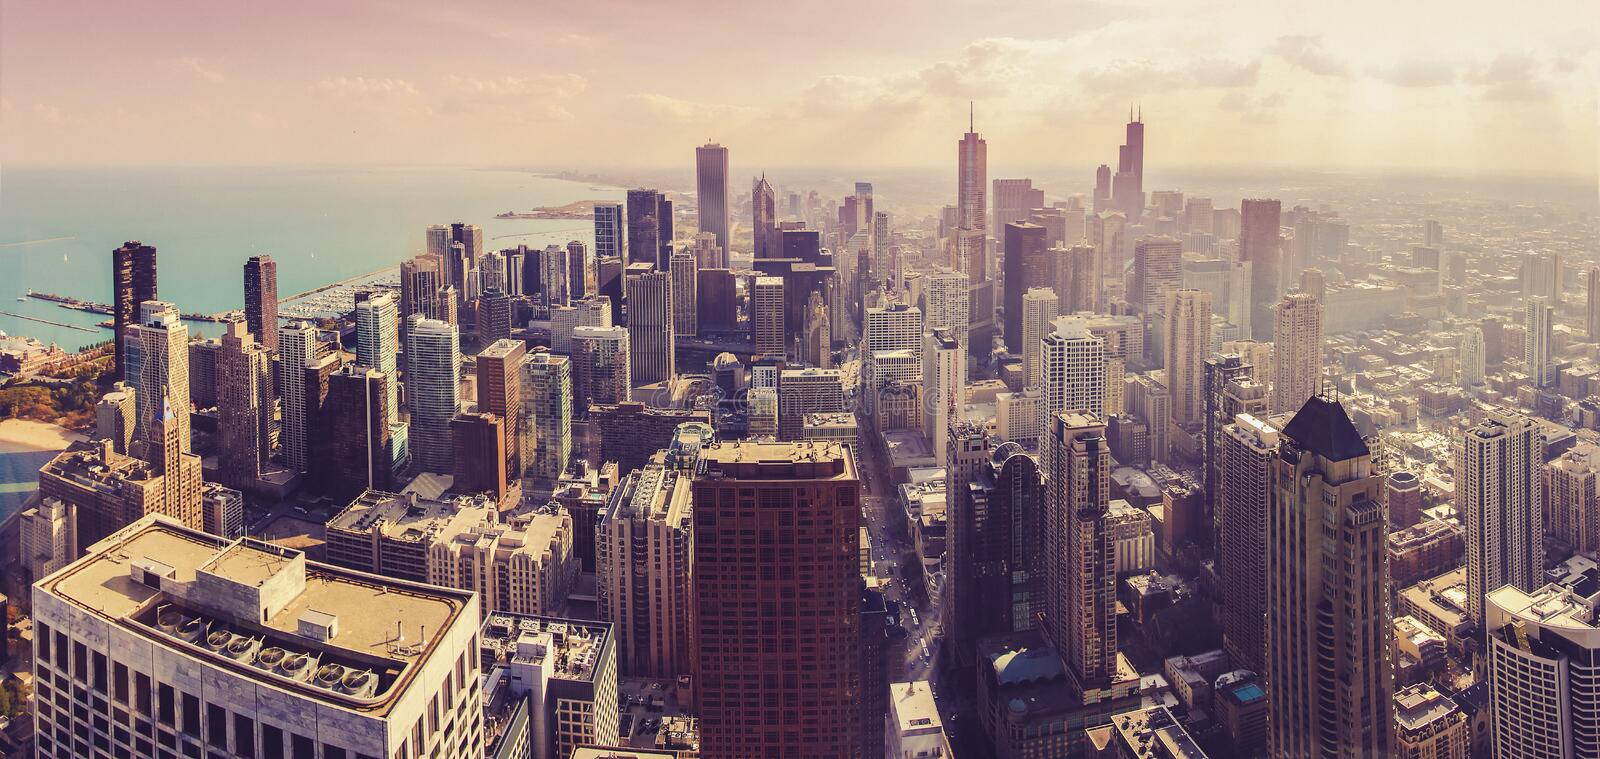 Panorama of Chicago Cityscape During Sunset from Aerial View royalty free stock photo